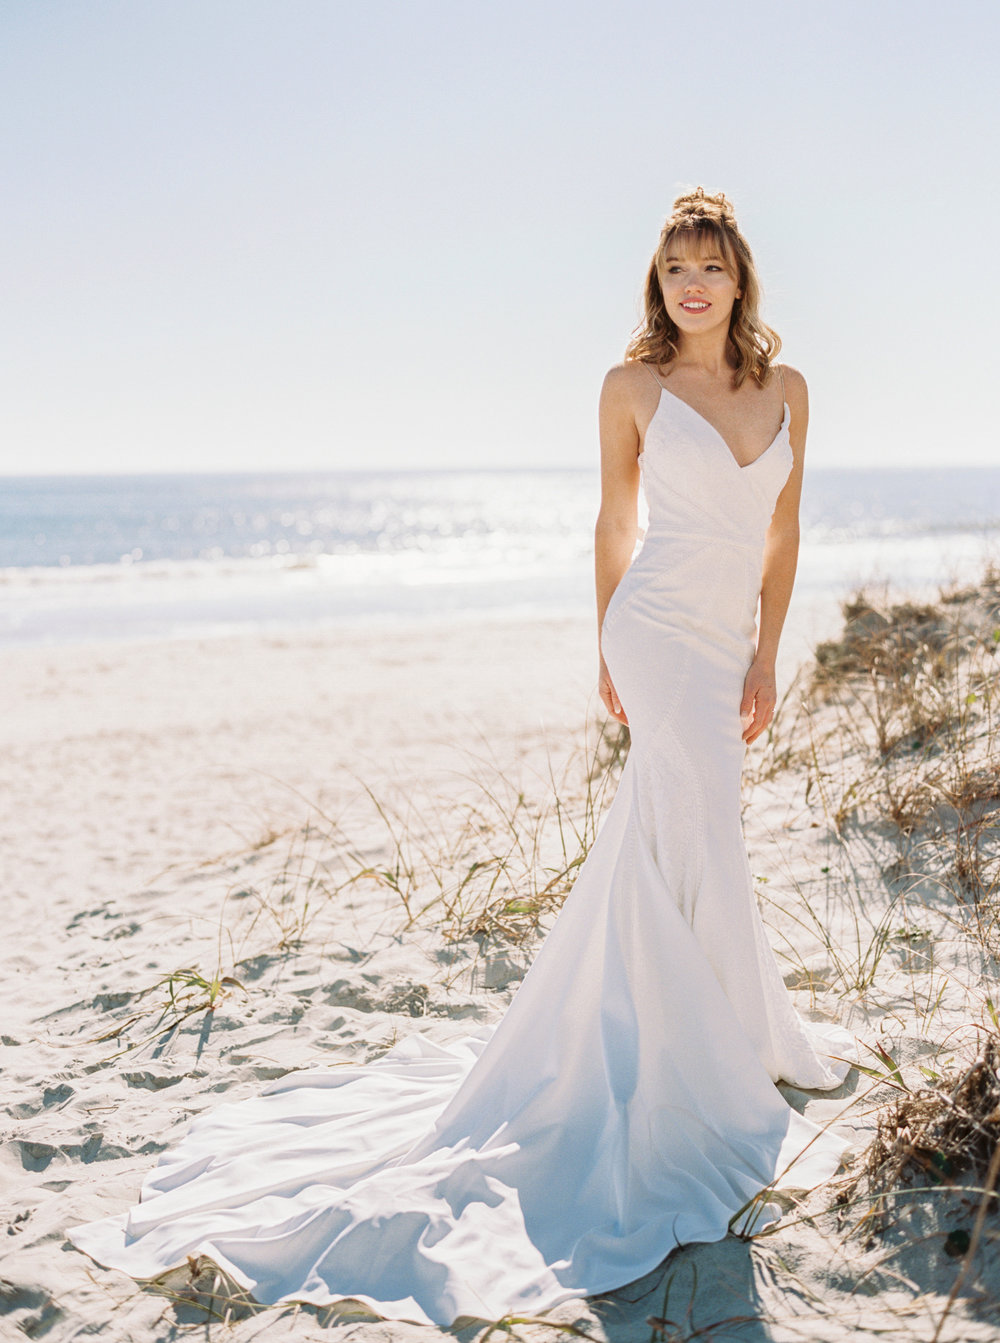 Bridal Fashion Editorial at Huntington Beach State Park's Atalaya Castle in Murrells Inlet, SC  //  Charleston wedding gown from Lovely Bride  //  Photographed by JoPhoto  //  Styled by The Petal Report  //  A Lowcountry Wedding Magazine & Blog